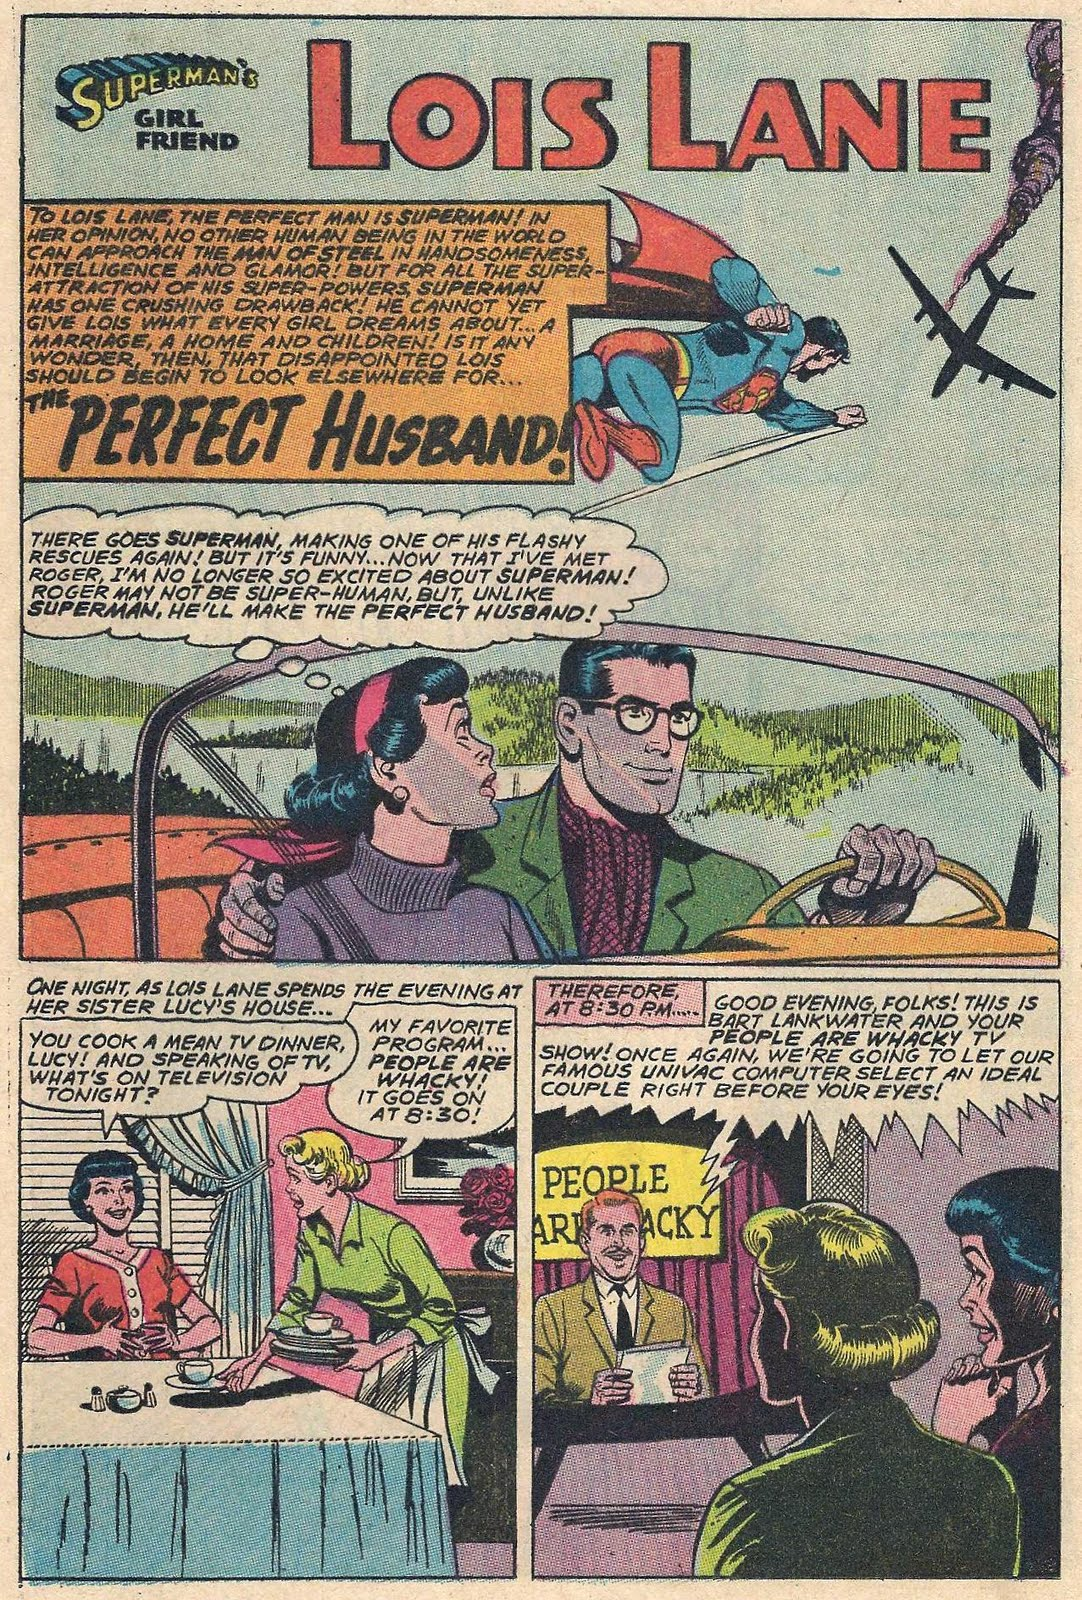 So it only seem right for Gay for Lois Lane to present The Perfect Husband ...